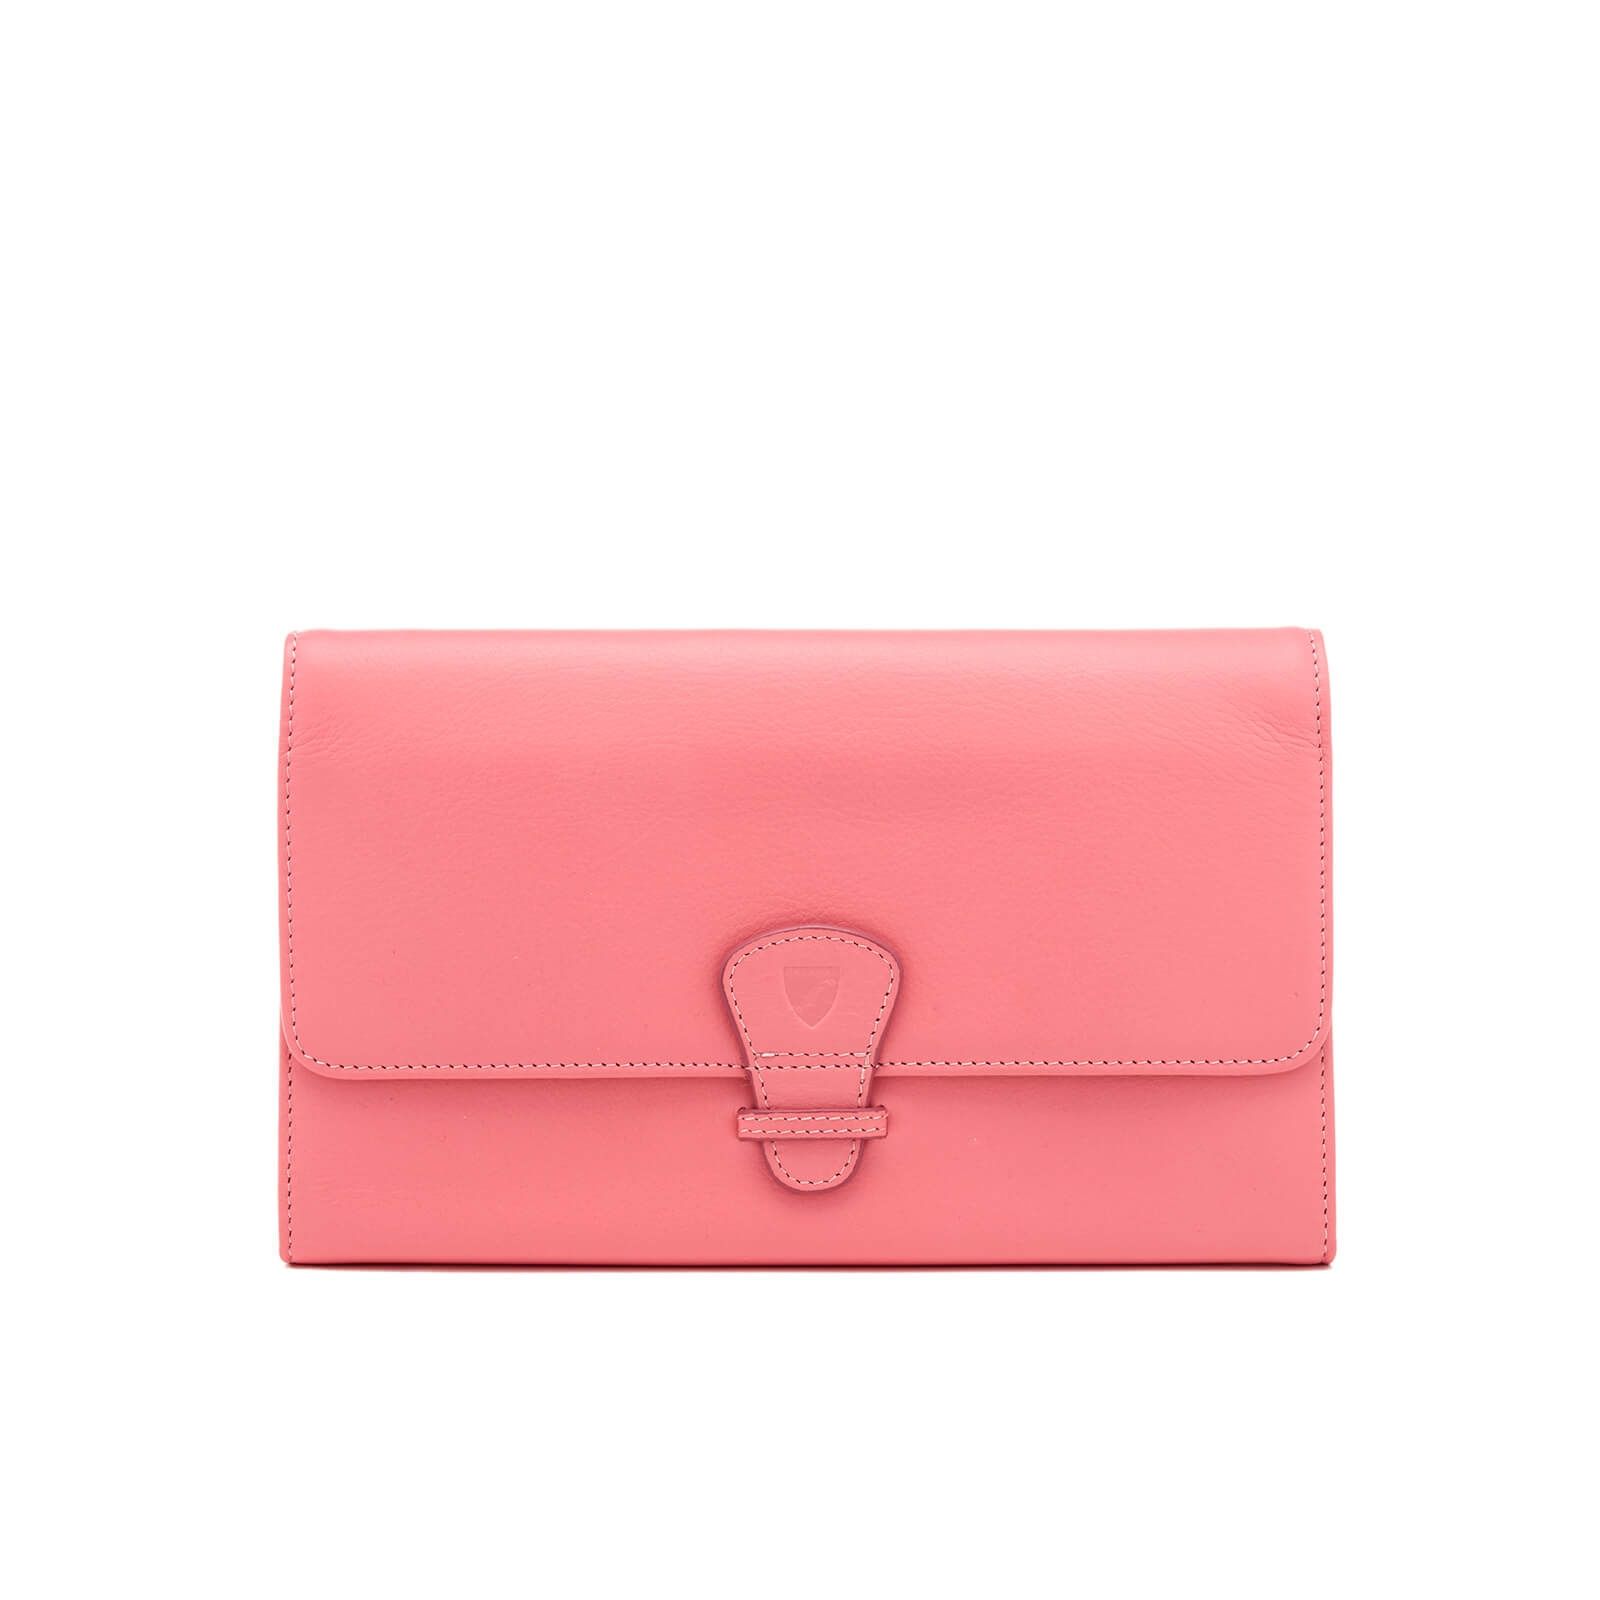 Aspinal of London Women's Classic Travel Smooth Blush Suede Wallet - Pink